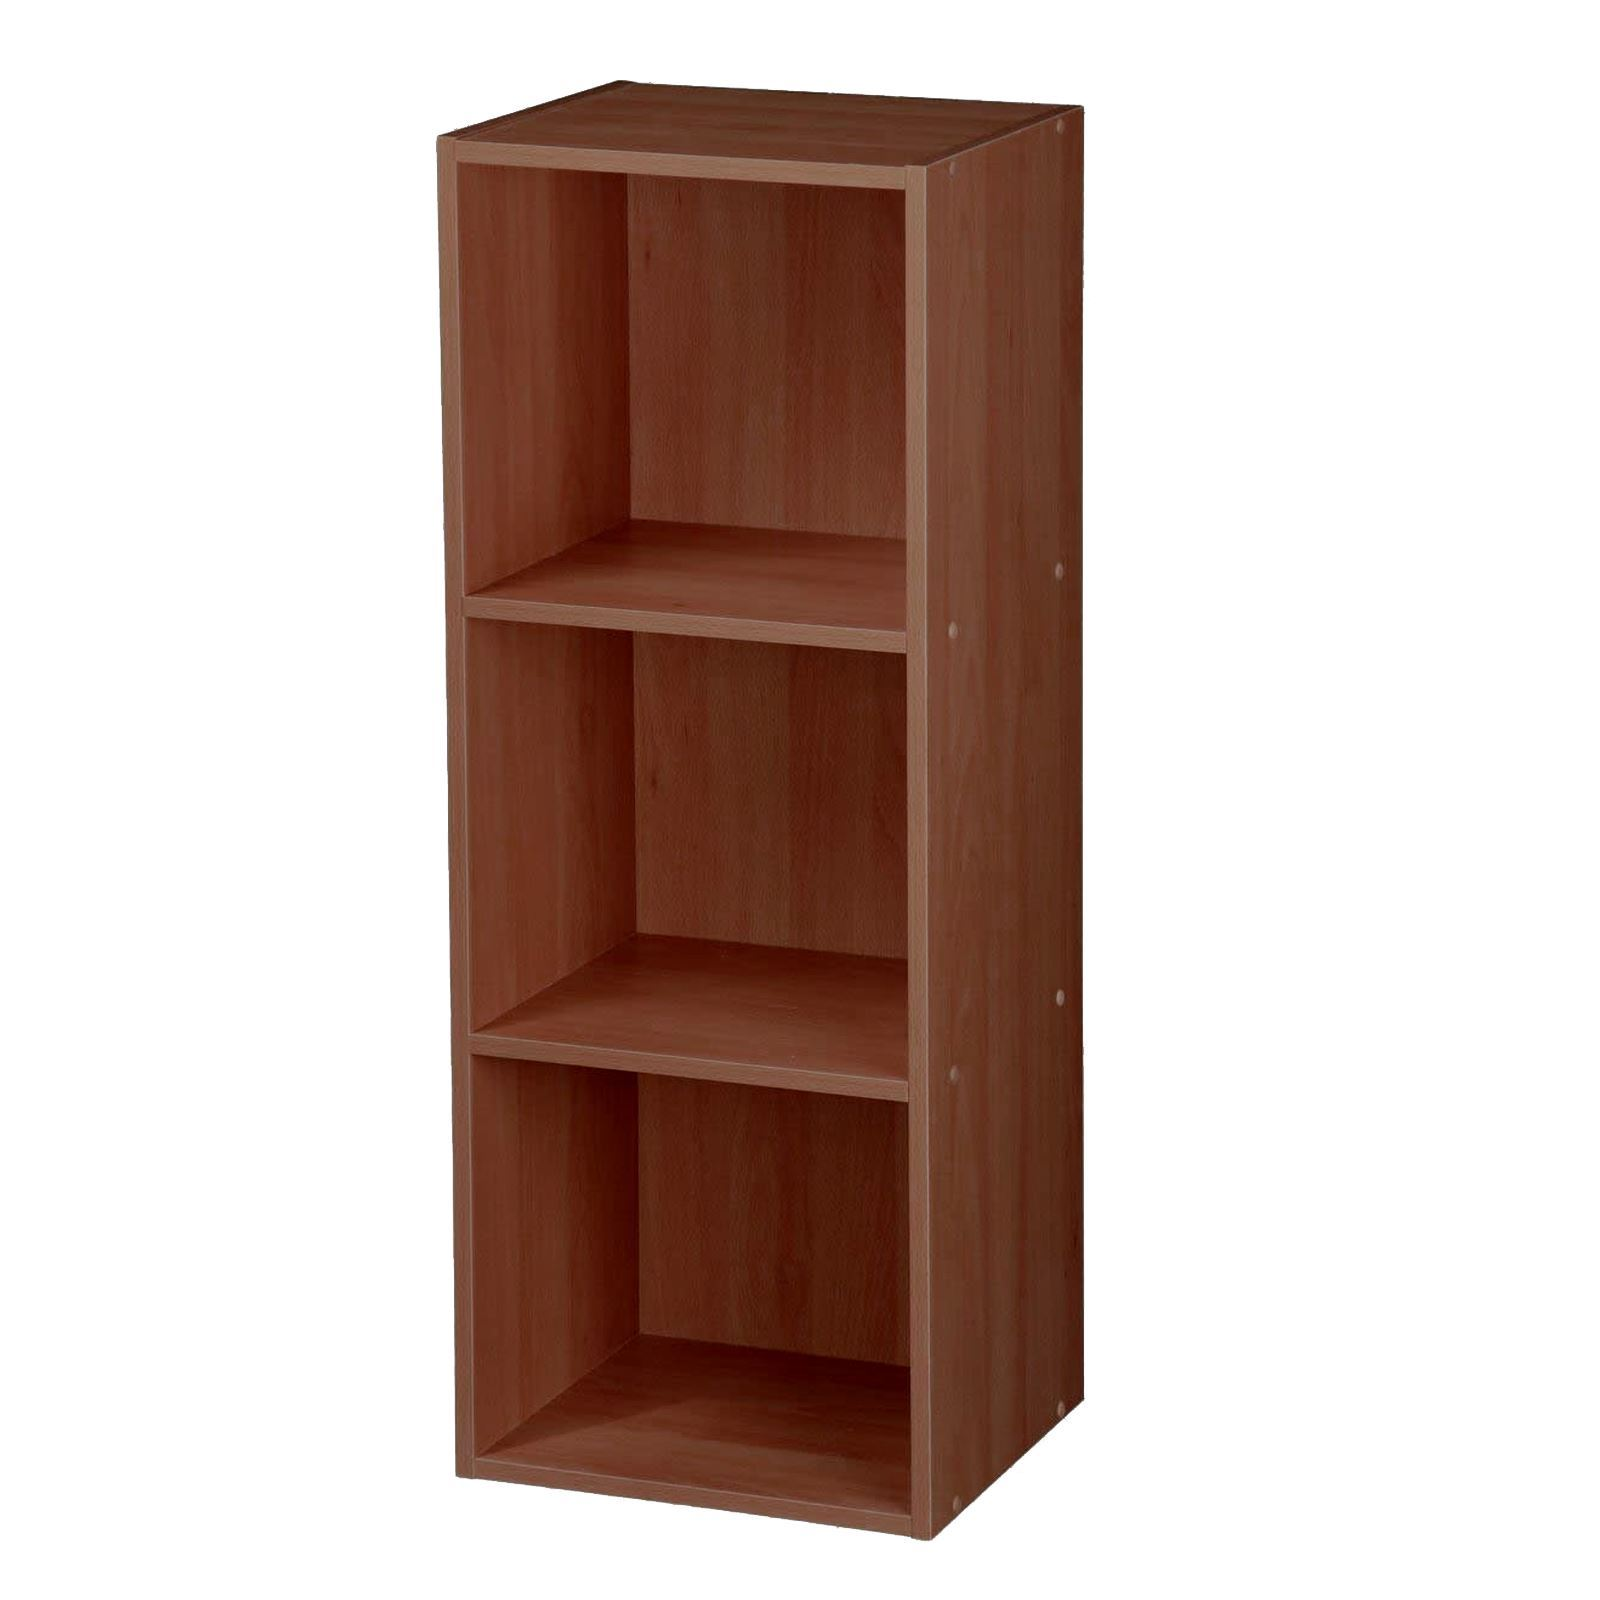 Wooden-Storage-Unit-Cube-2-3-4-Tier-Strong-Bookcase-Shelving-Home-Office-Display thumbnail 20